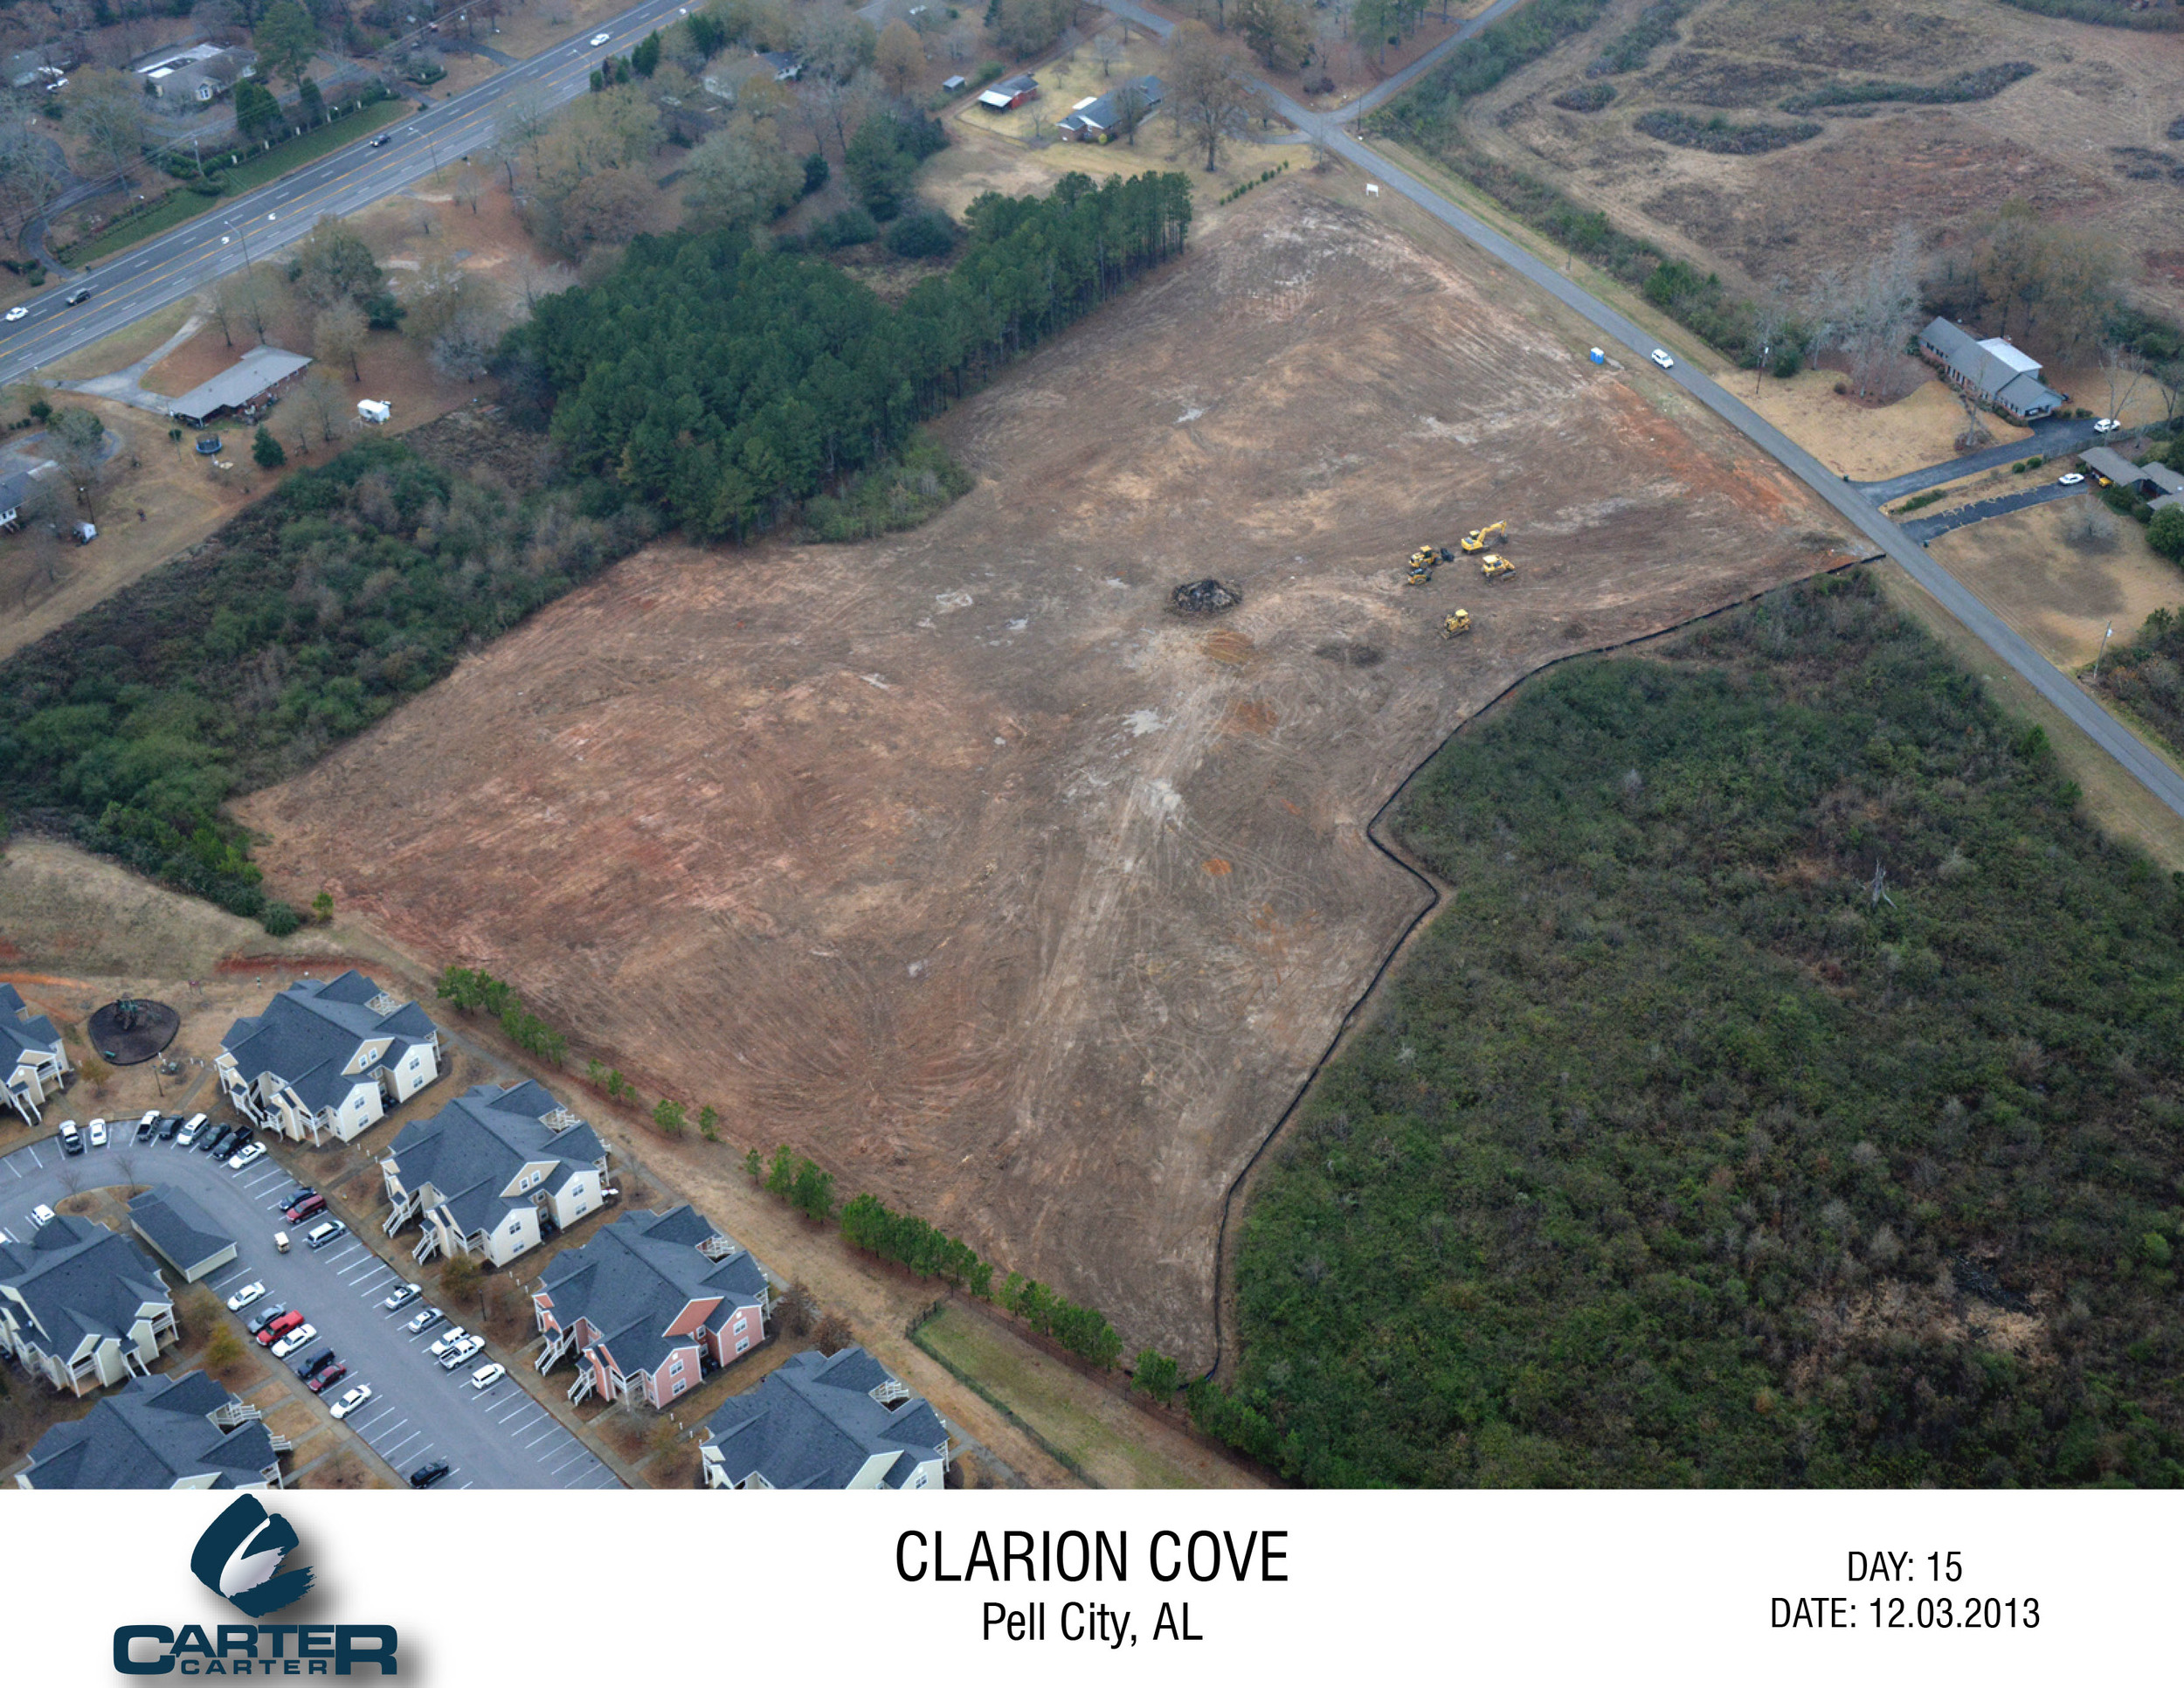 Clarion Cove 131203-2.jpg